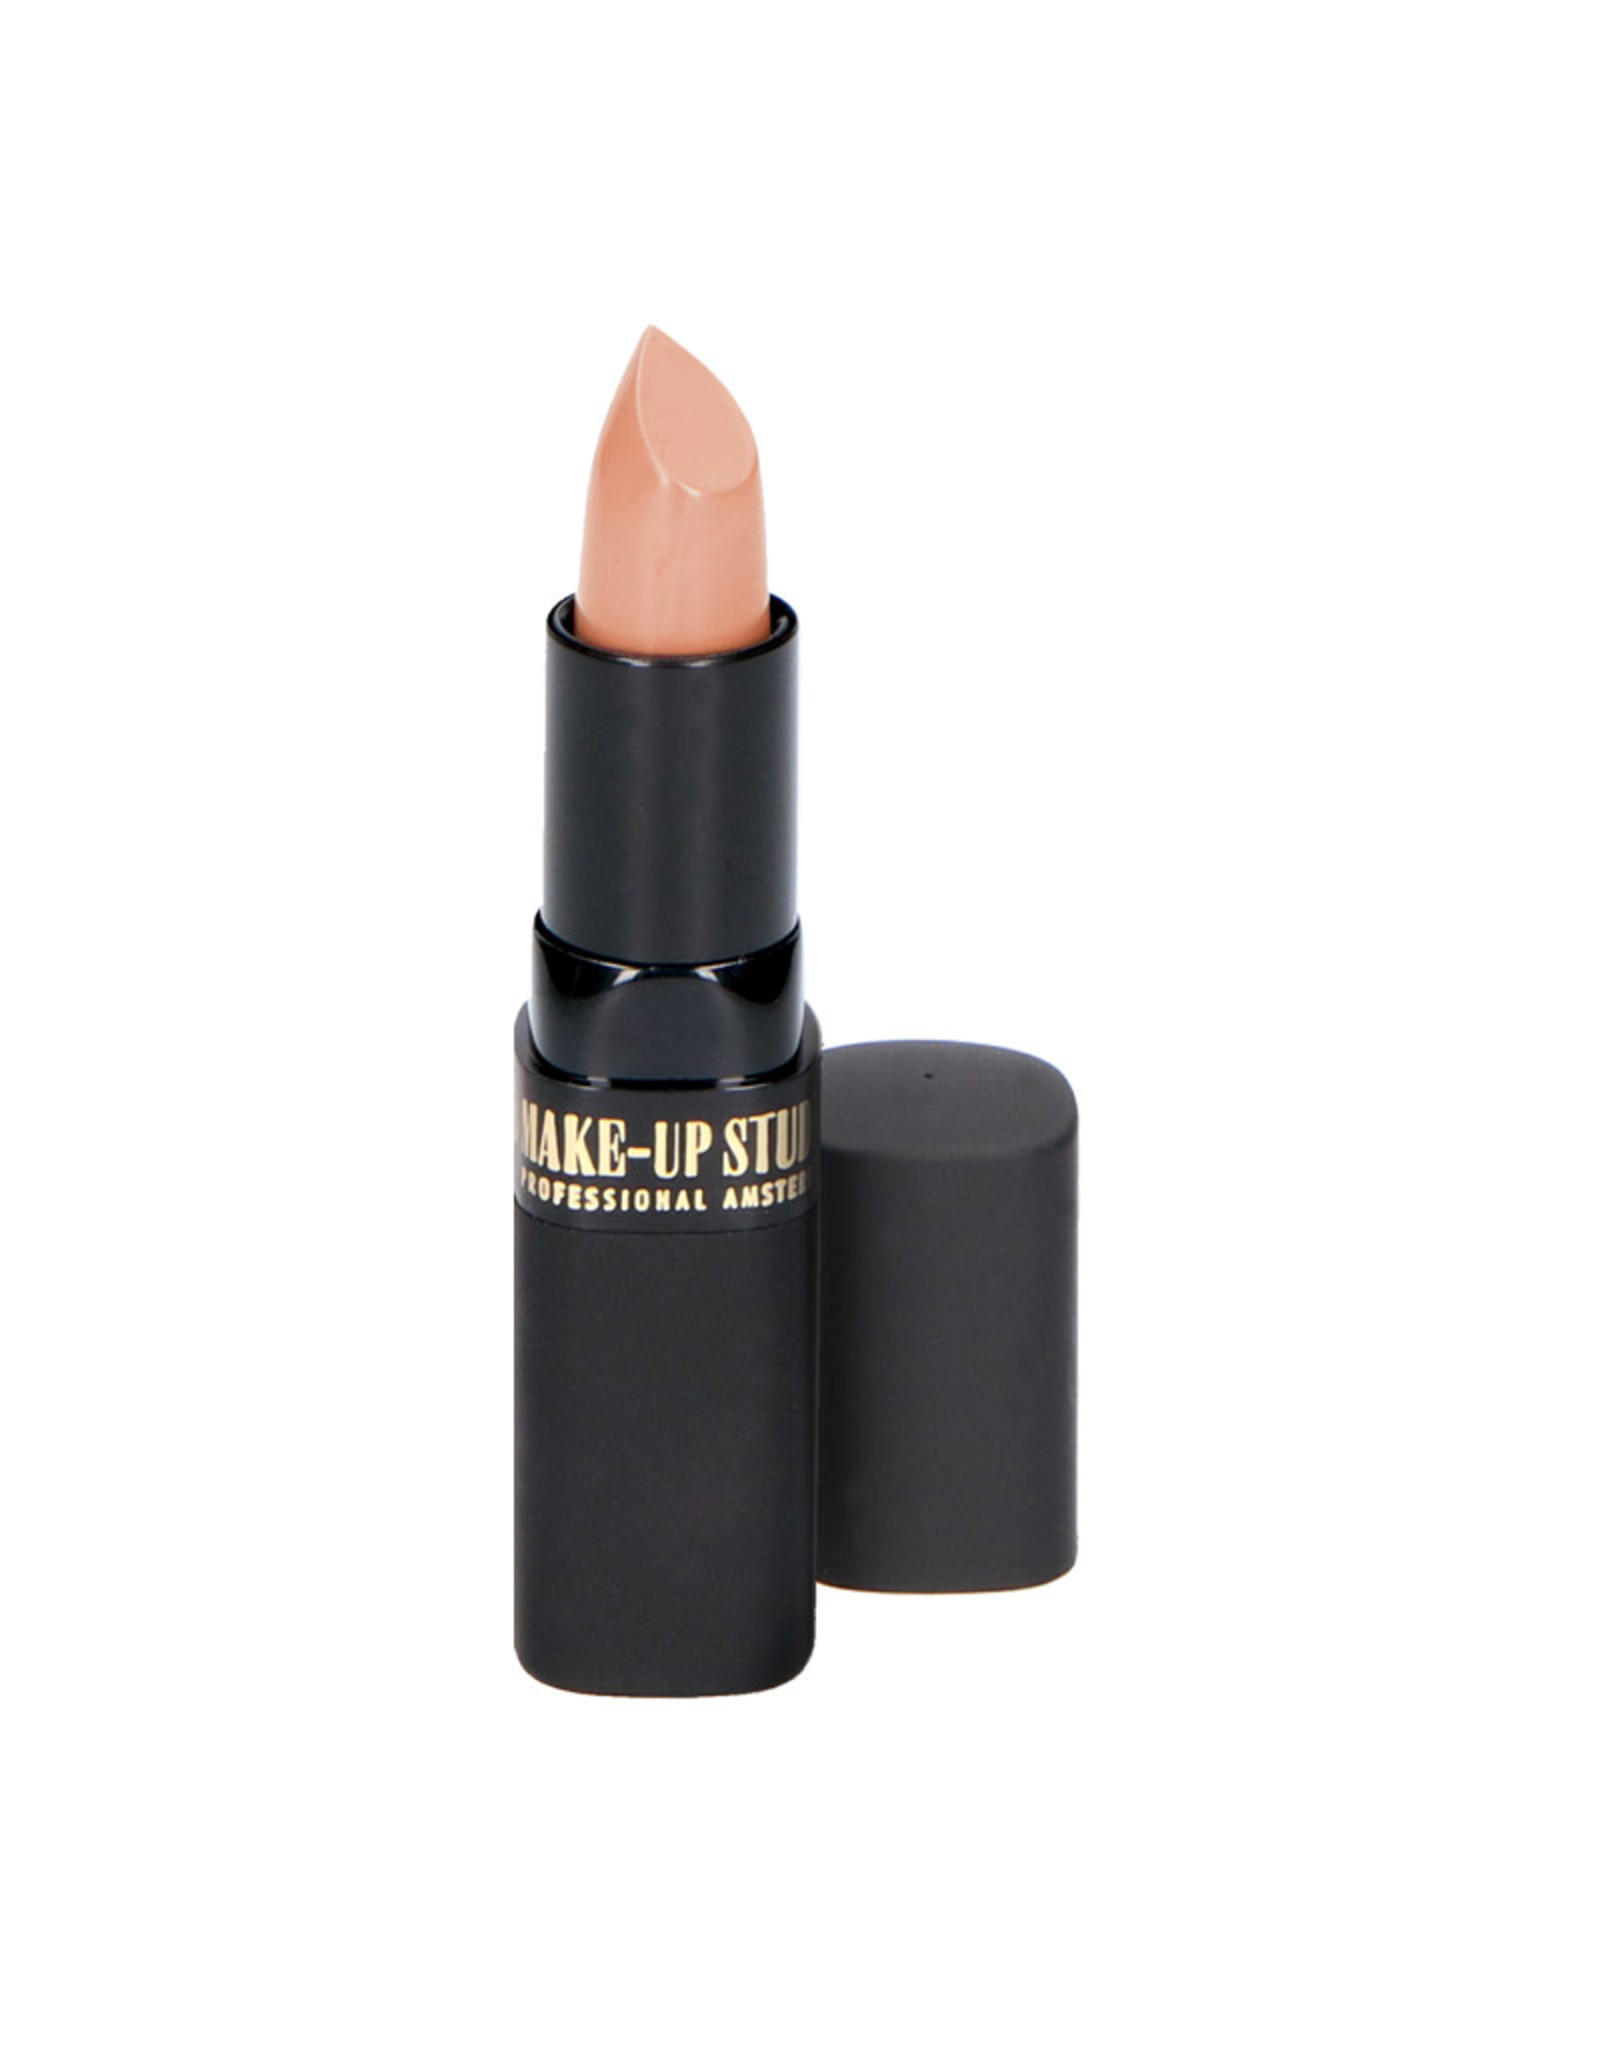 MAKE-UP STUDIO LIPSTICK MATTE EDGY NUDE